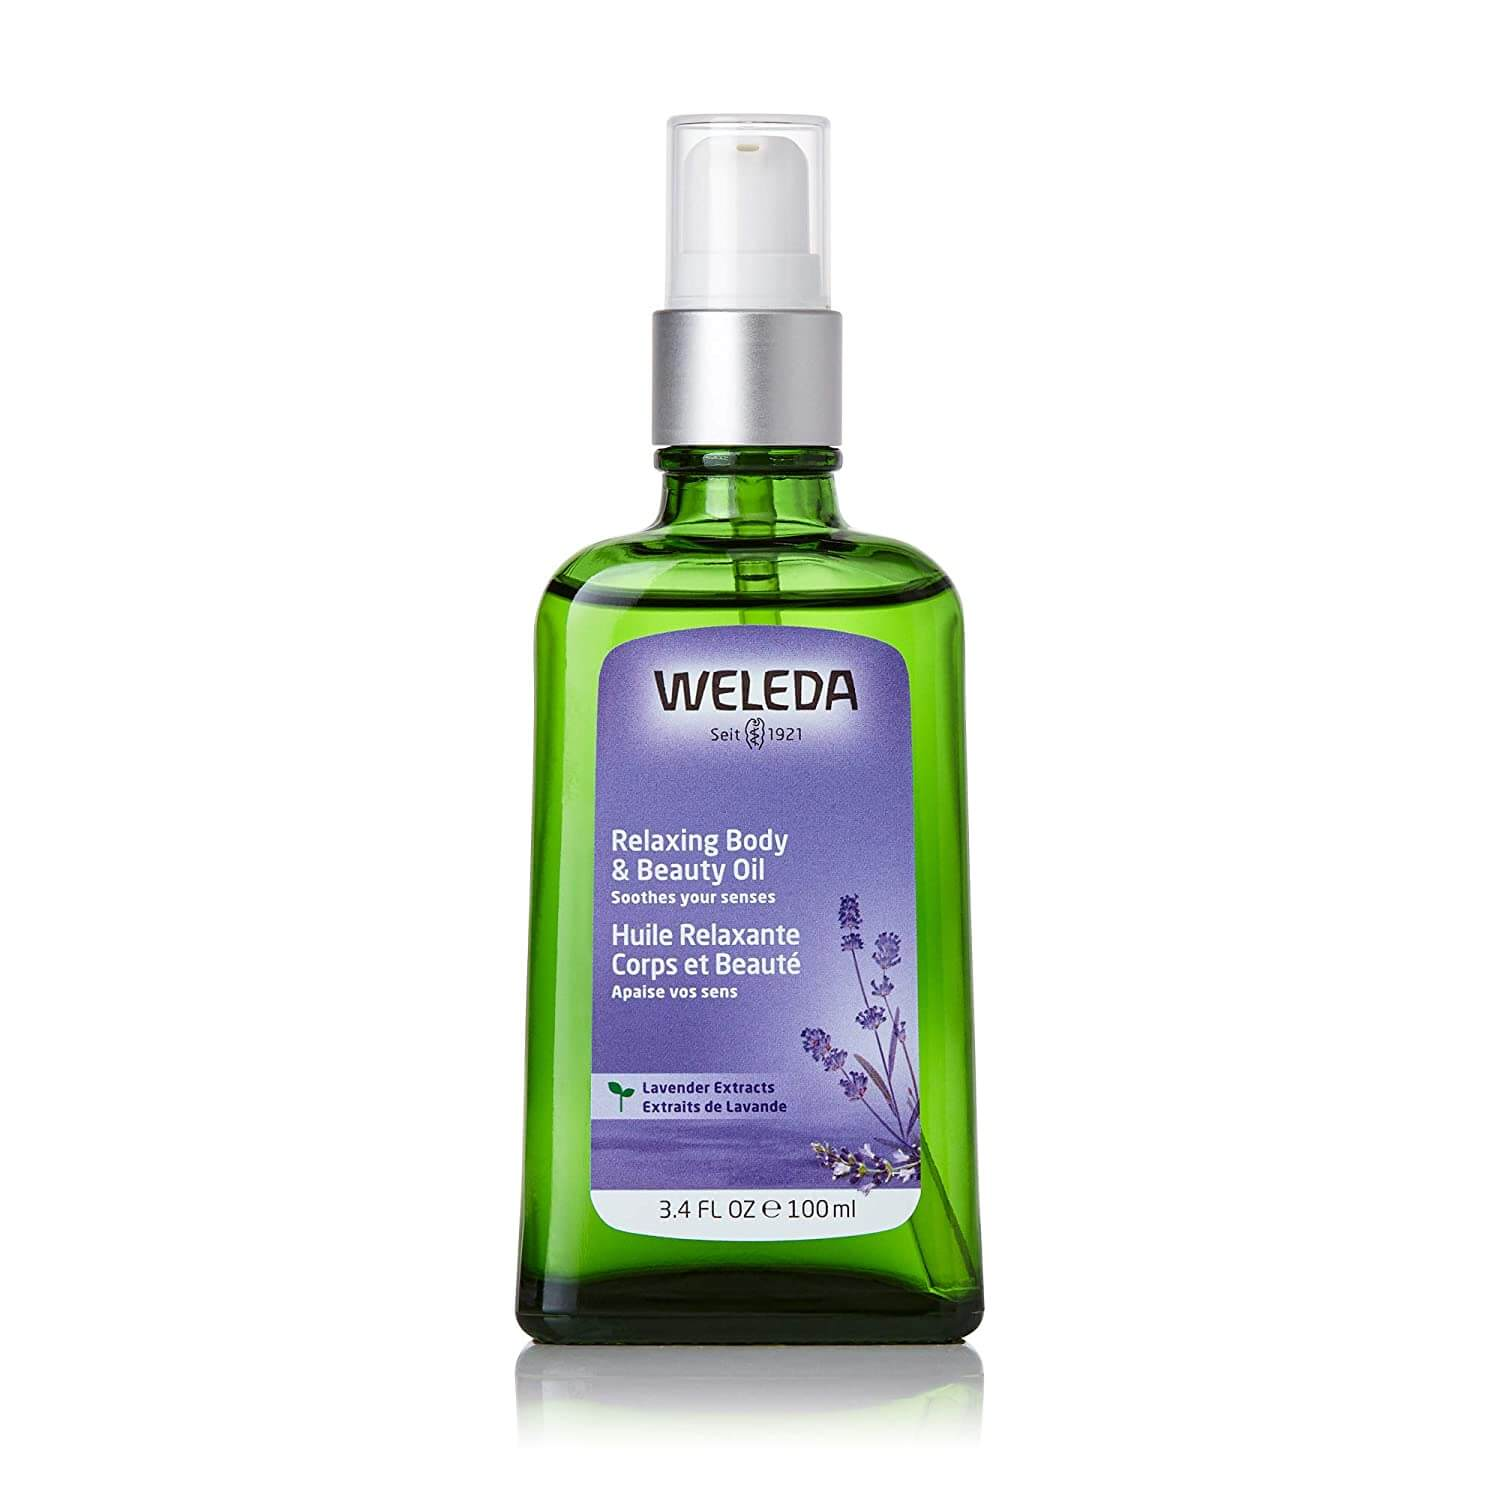 Weleda Relaxing Lavender Body & Beauty Oil as one of the best gifts for people with anxiety